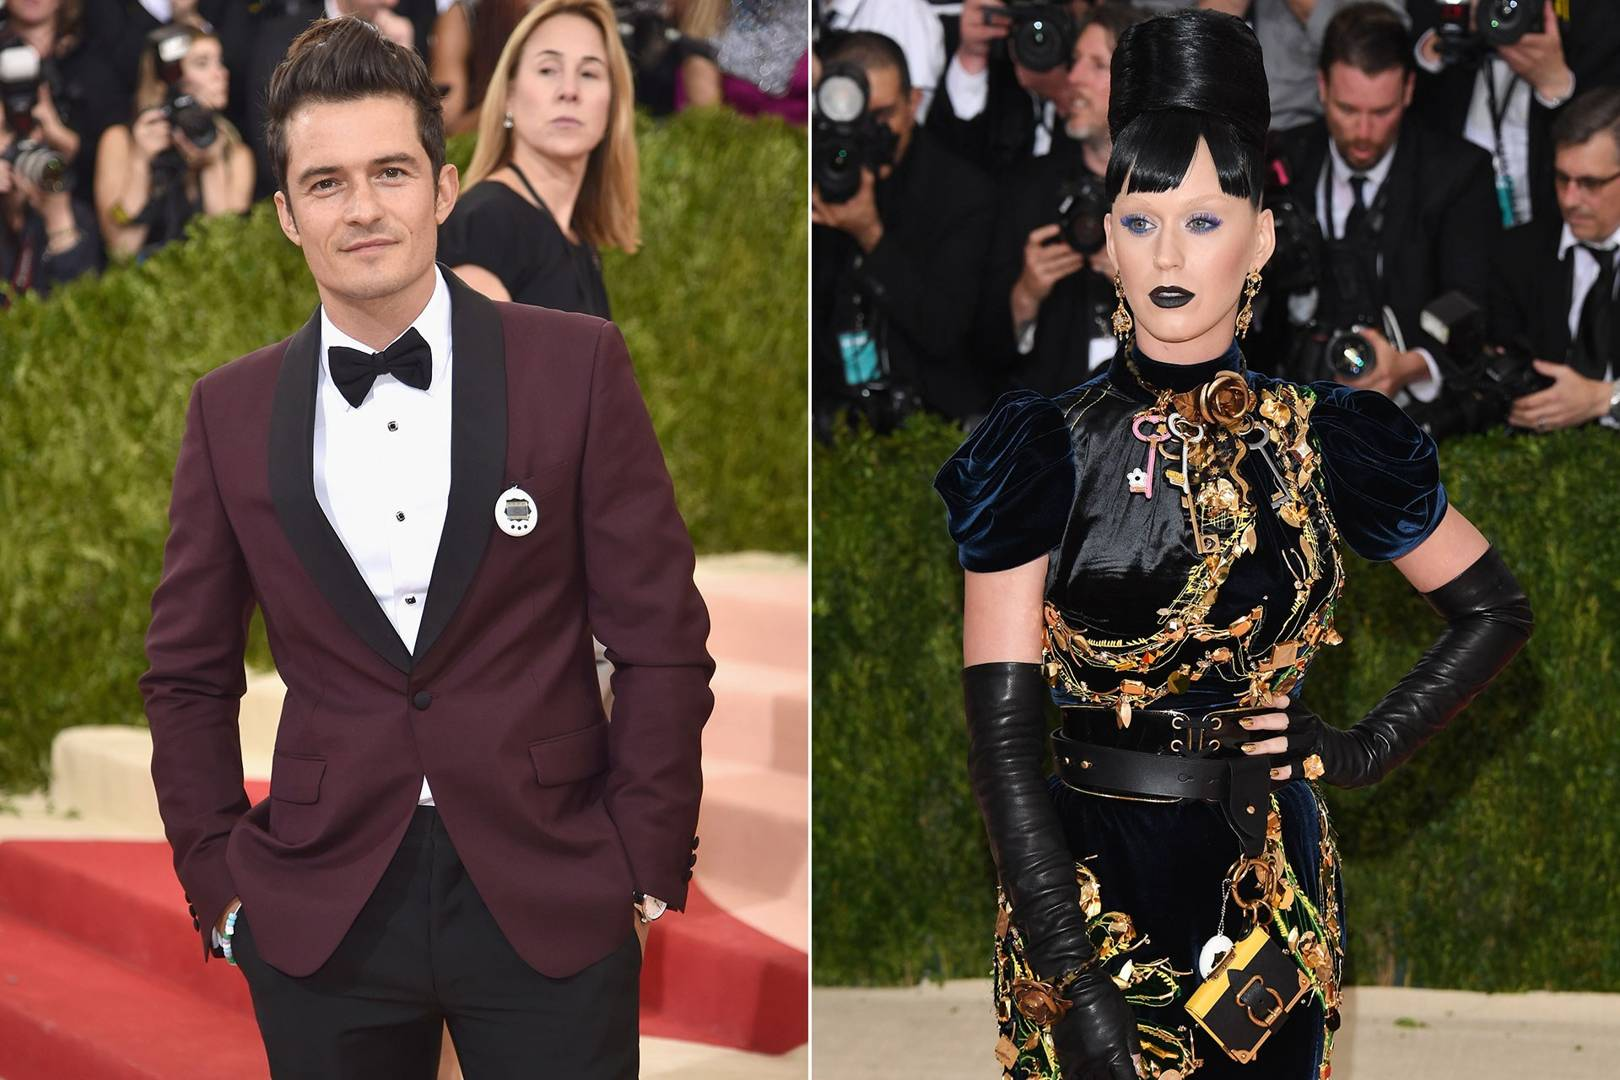 who is katy perry dating 2018